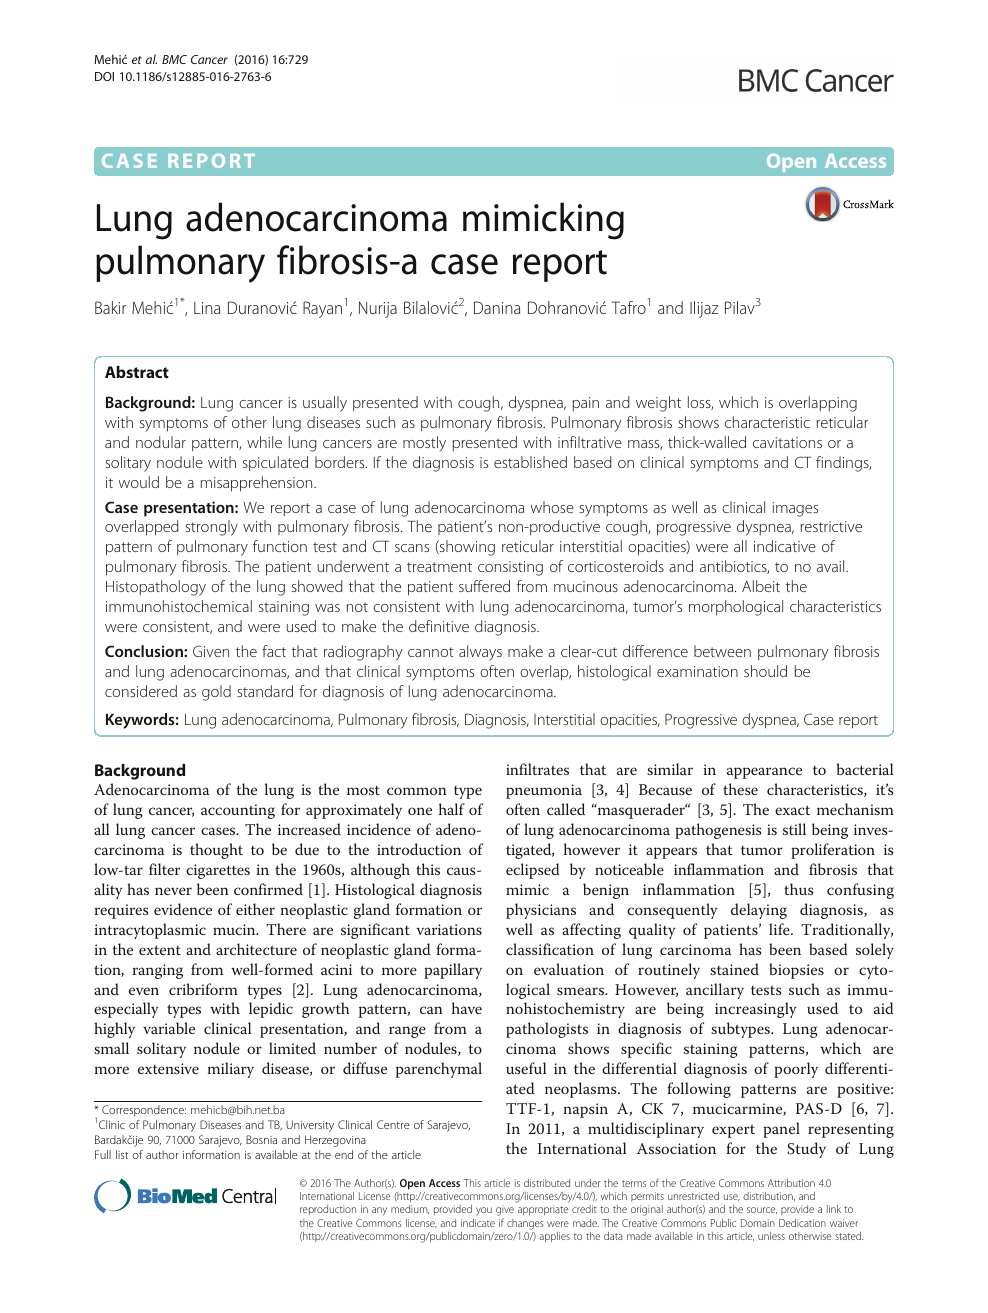 Lung adenocarcinoma mimicking pulmonary fibrosis-a case report